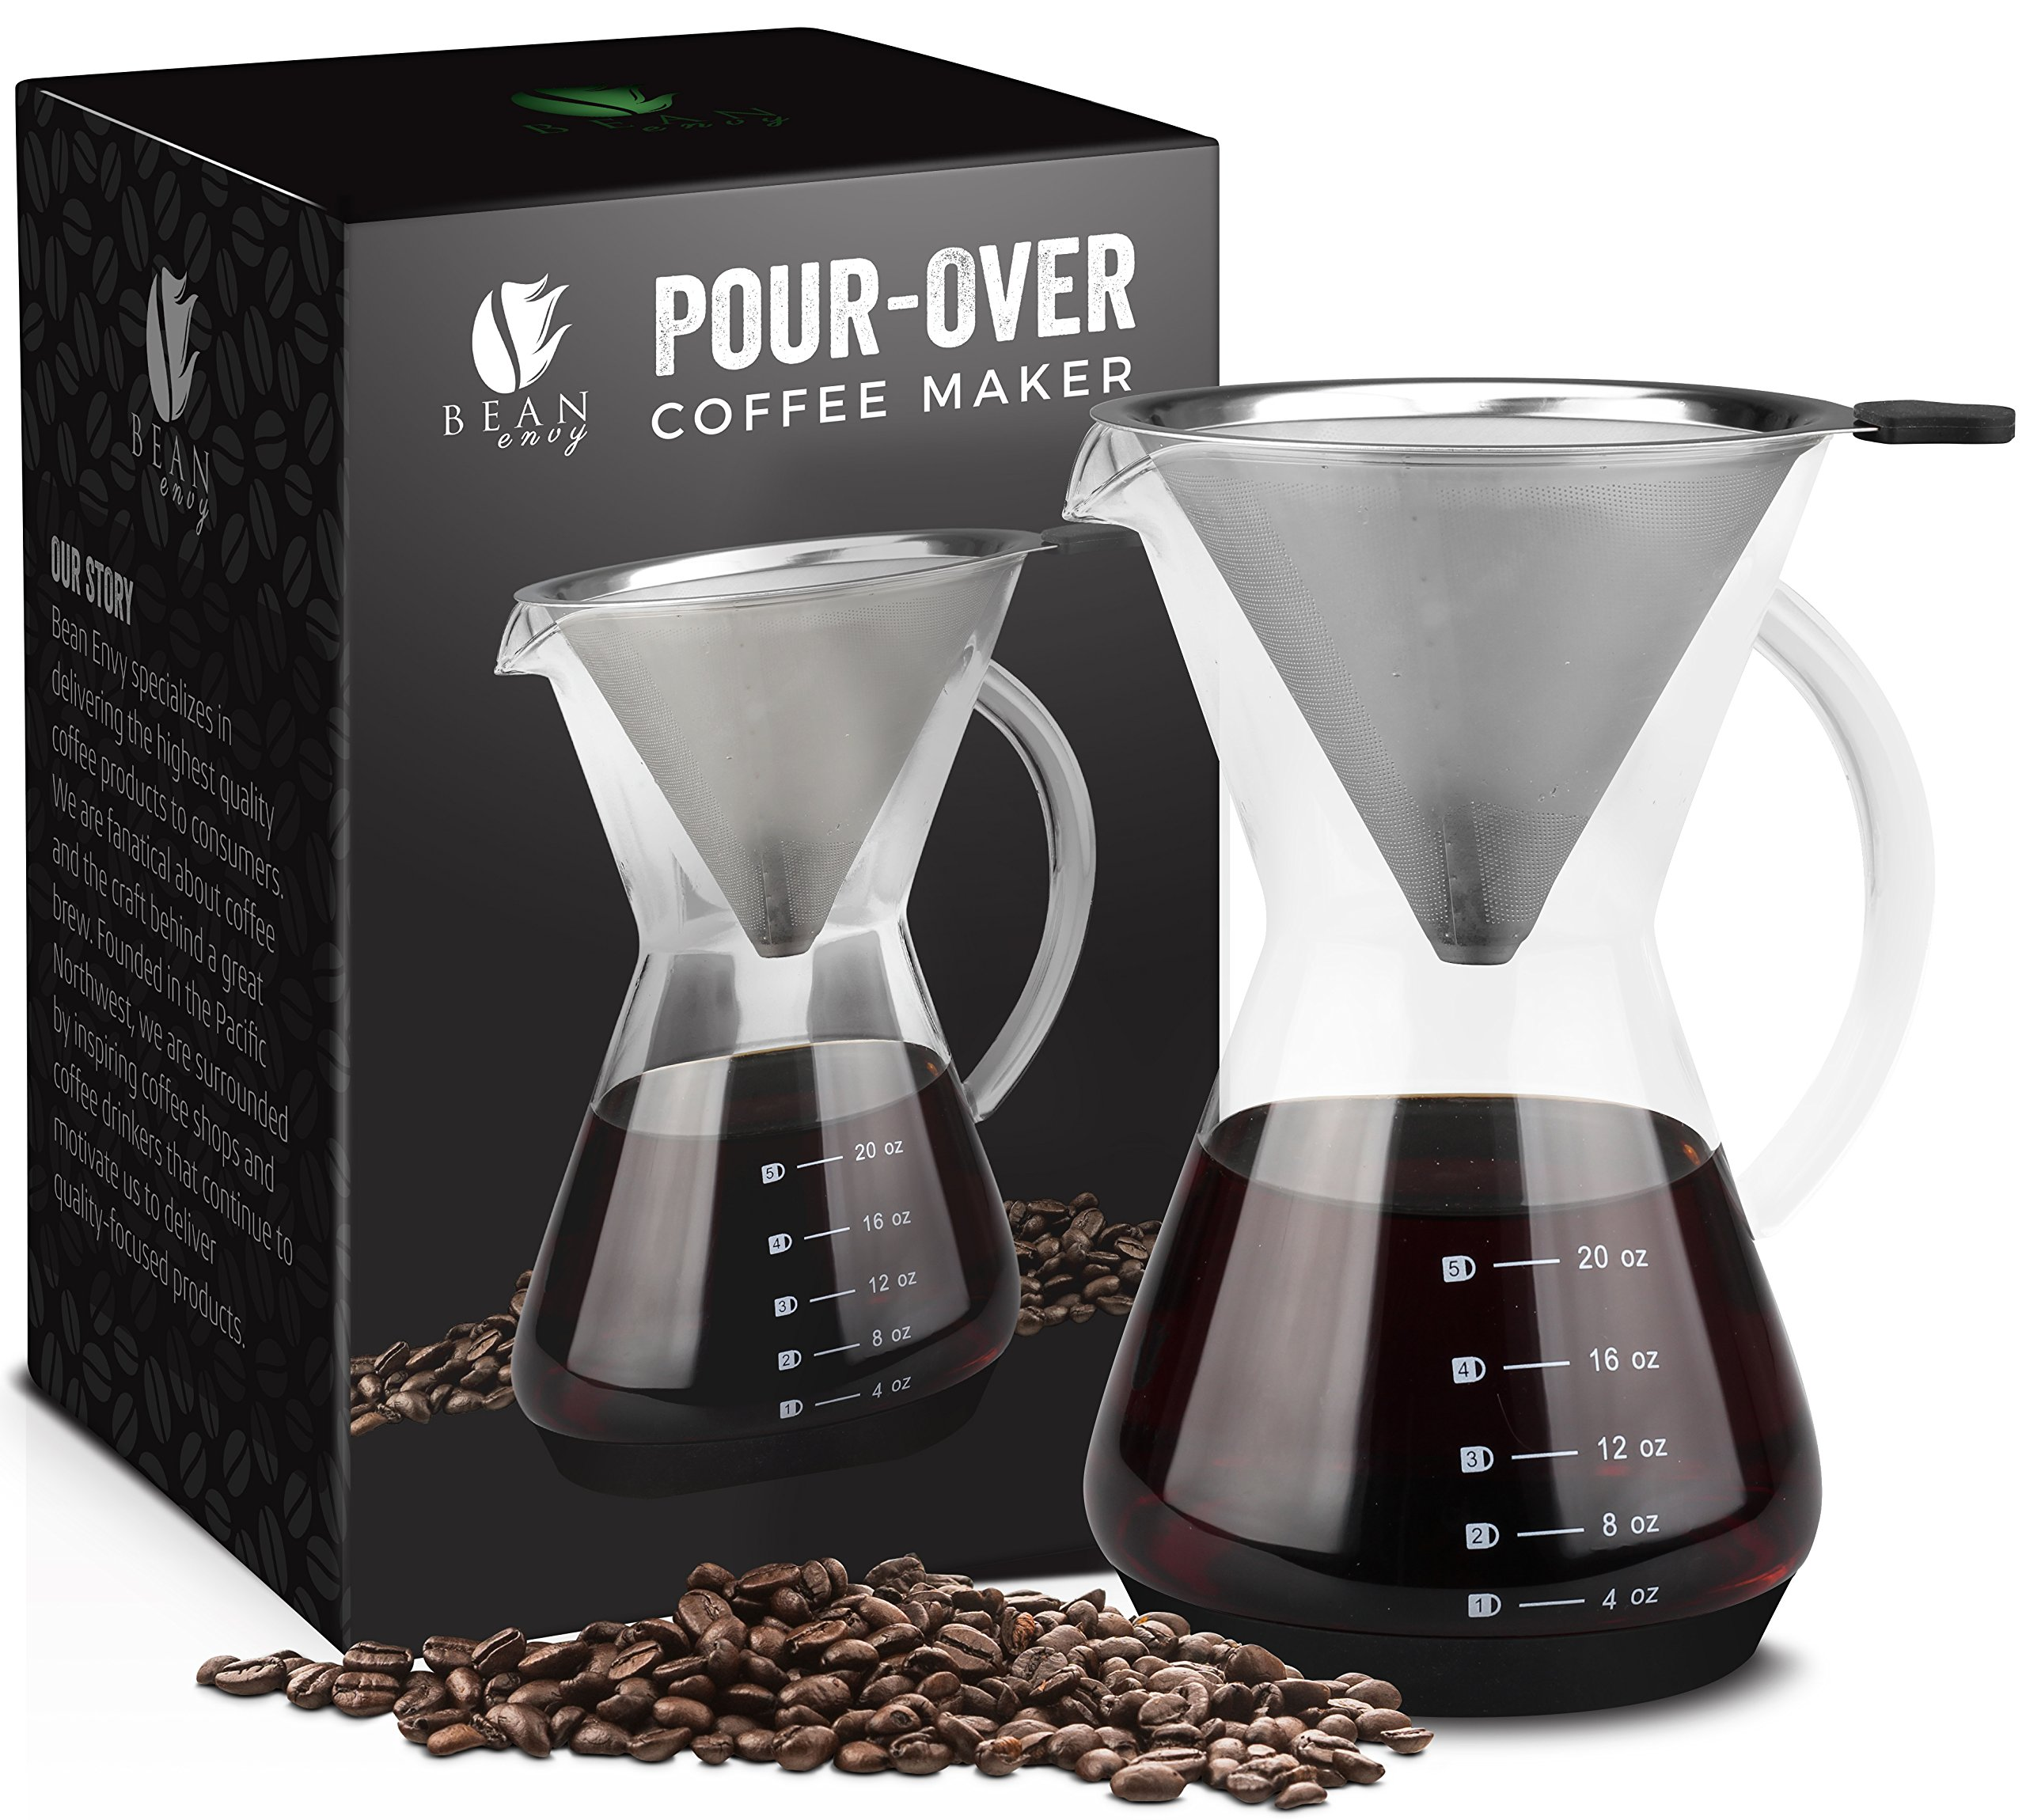 Bean Envy Pour Over Coffee Maker - 20 - oz Borosilicate Glass Carafe - Rust Resistant Stainless Steel Paperless Filter/Dripper - Includes Patent Pending Silicone Sleeve by Bean Envy (Image #1)